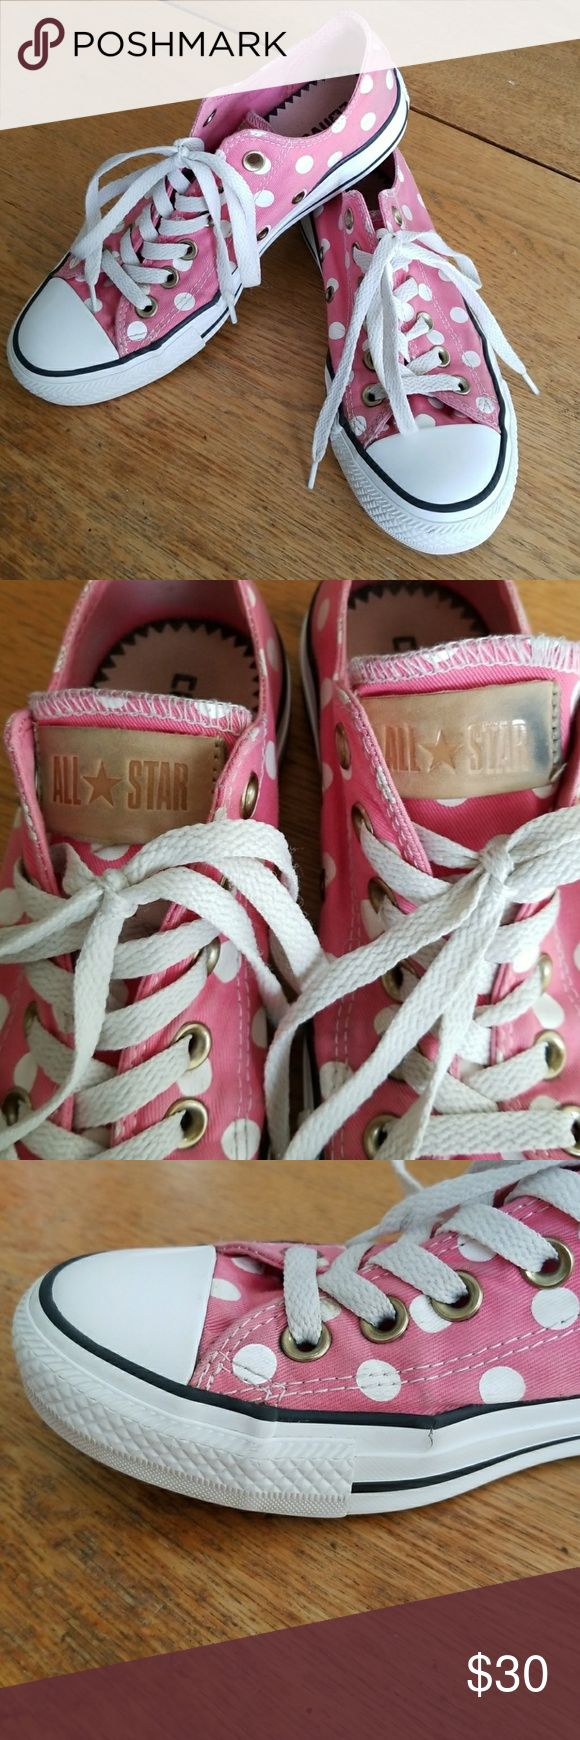 Pink Polka Dot All Star Converse/Chucks Pink Polka Dot Converse in good condition overall with some cracking where shoe usually bends and there's some black on tan all star logo from rubbing against the shoe. But overall really good condition and really adorable pair of shoes. Converse Shoes Sneakers